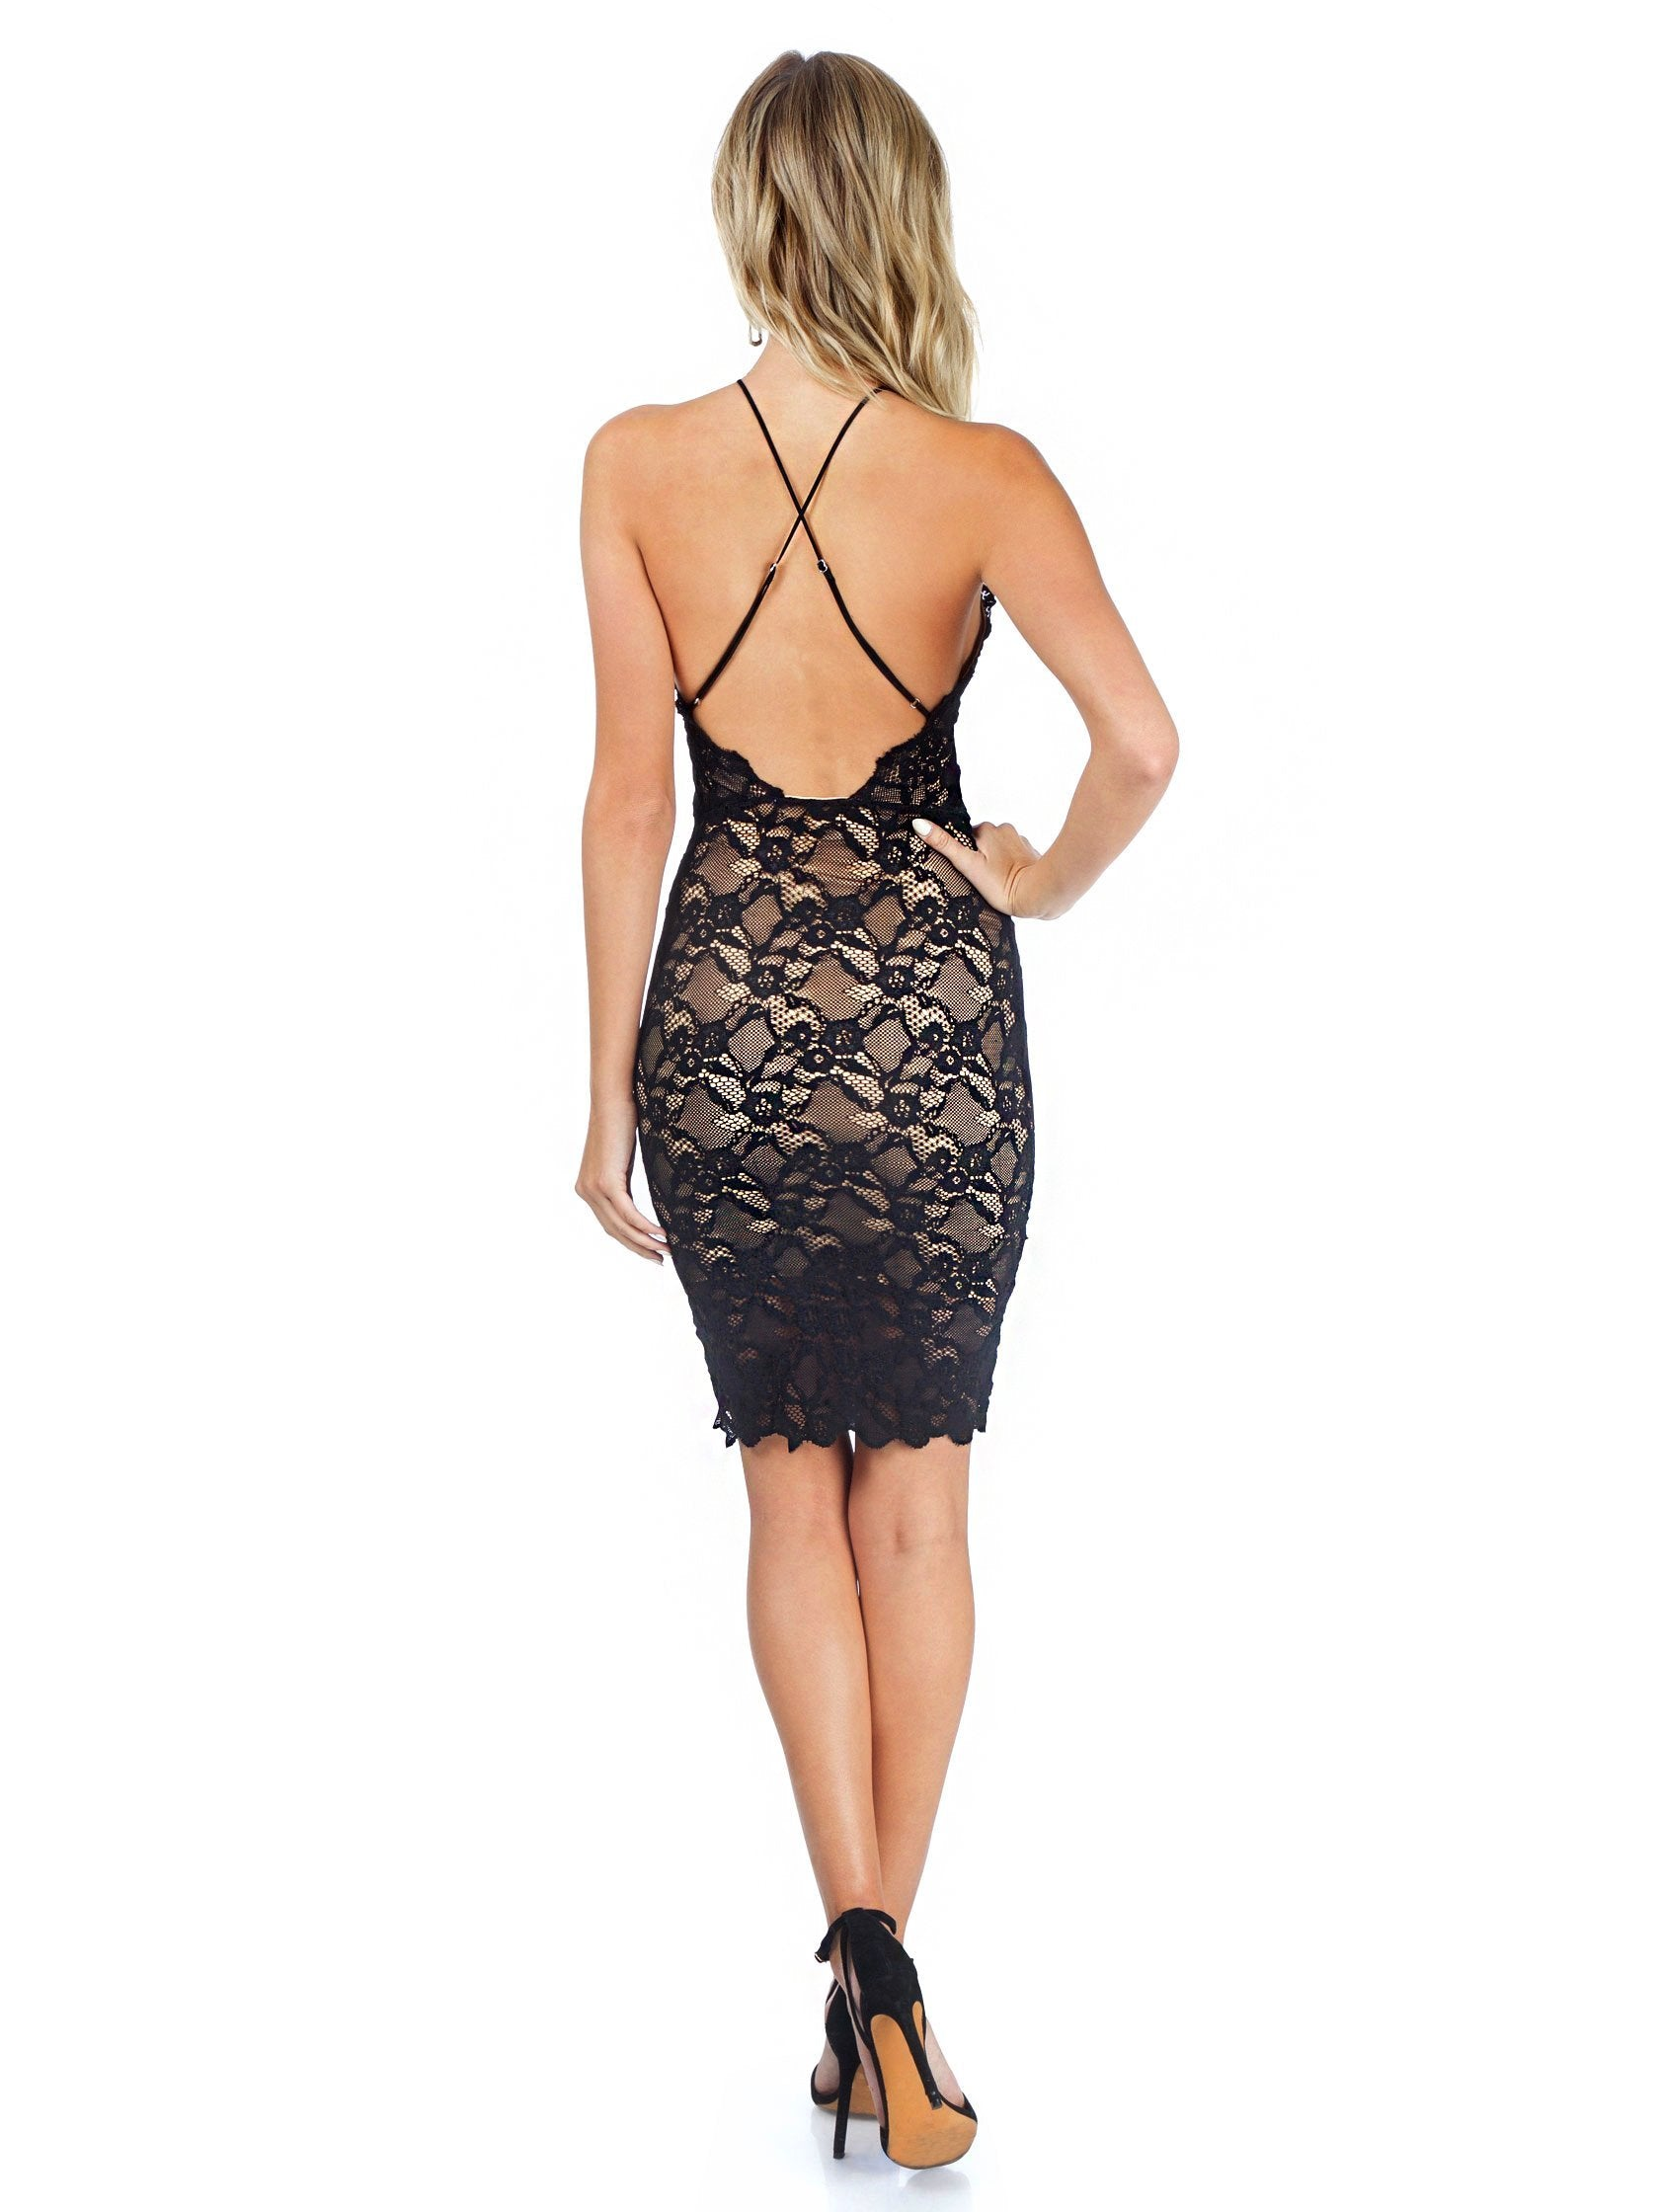 Women outfit in a dress rental from Nightcap Clothing called Black Drive Me Home Mini Dress